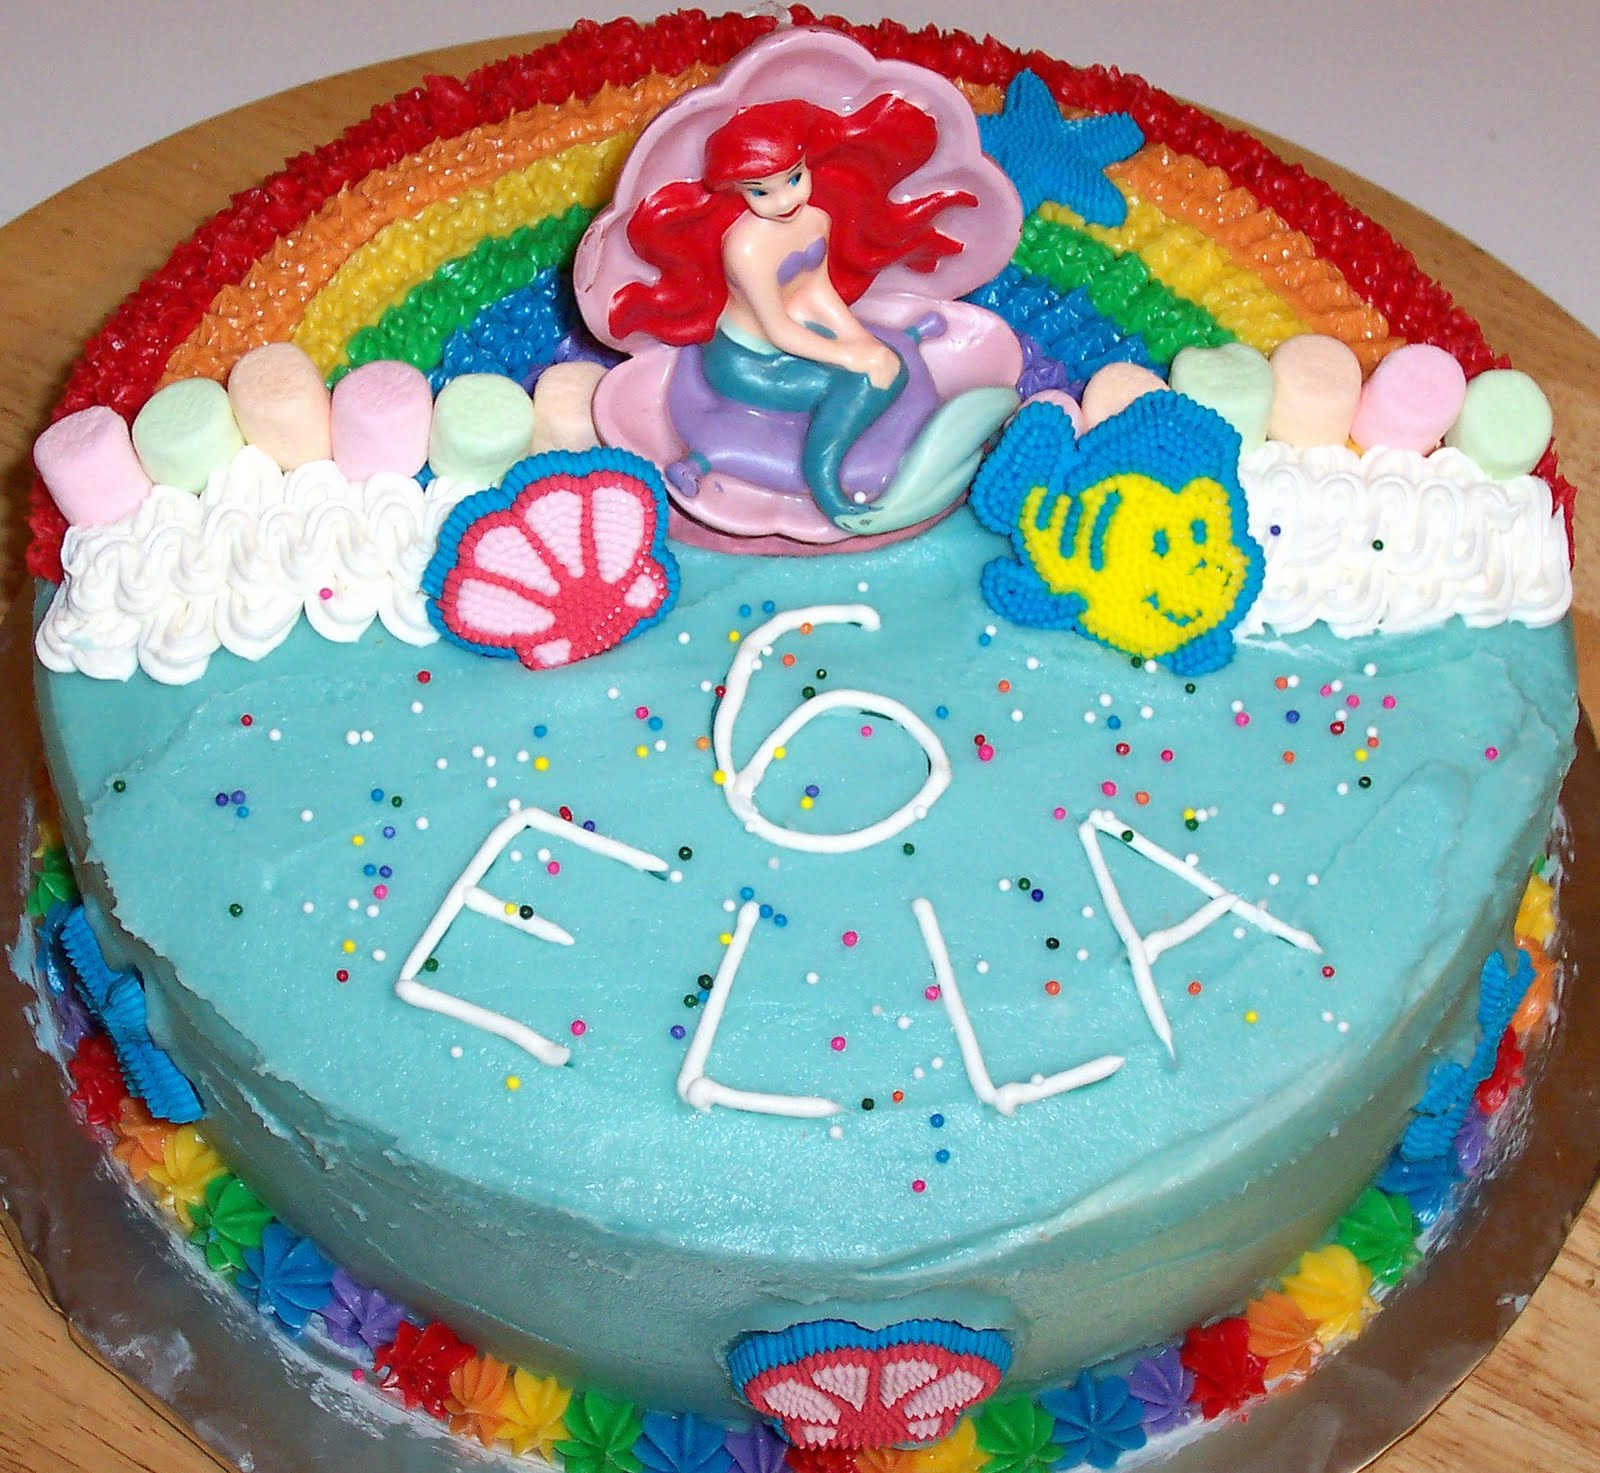 Ellabella Designs: Ariel Mermaid Rainbow Birthday Party